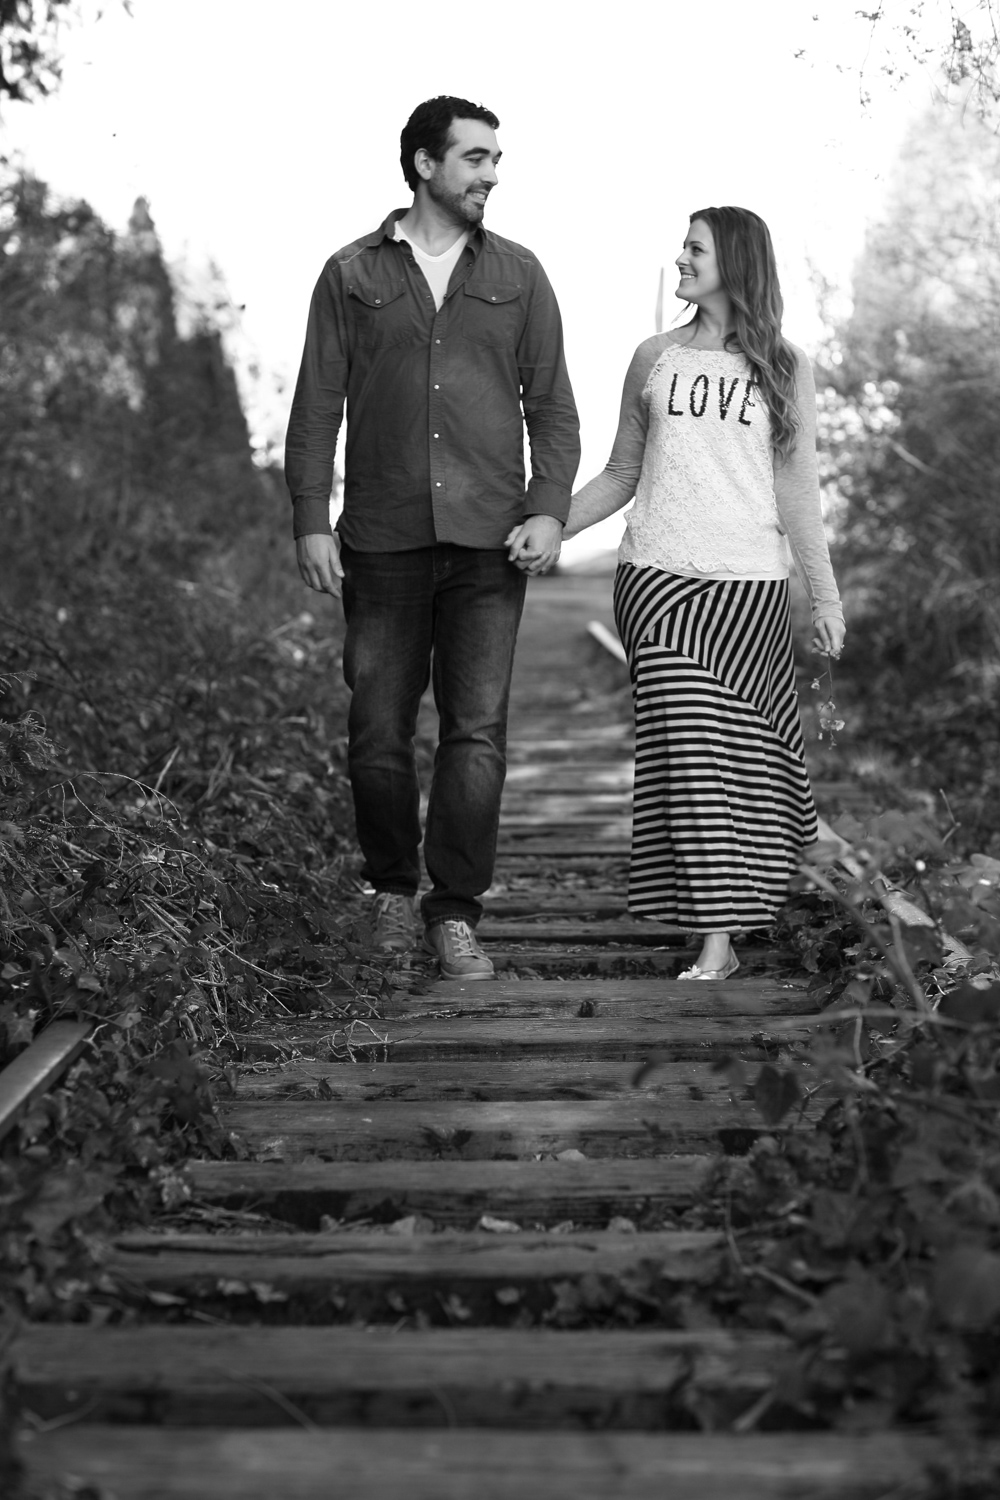 Engagement+Photos+Snohomish+Washington06.jpg